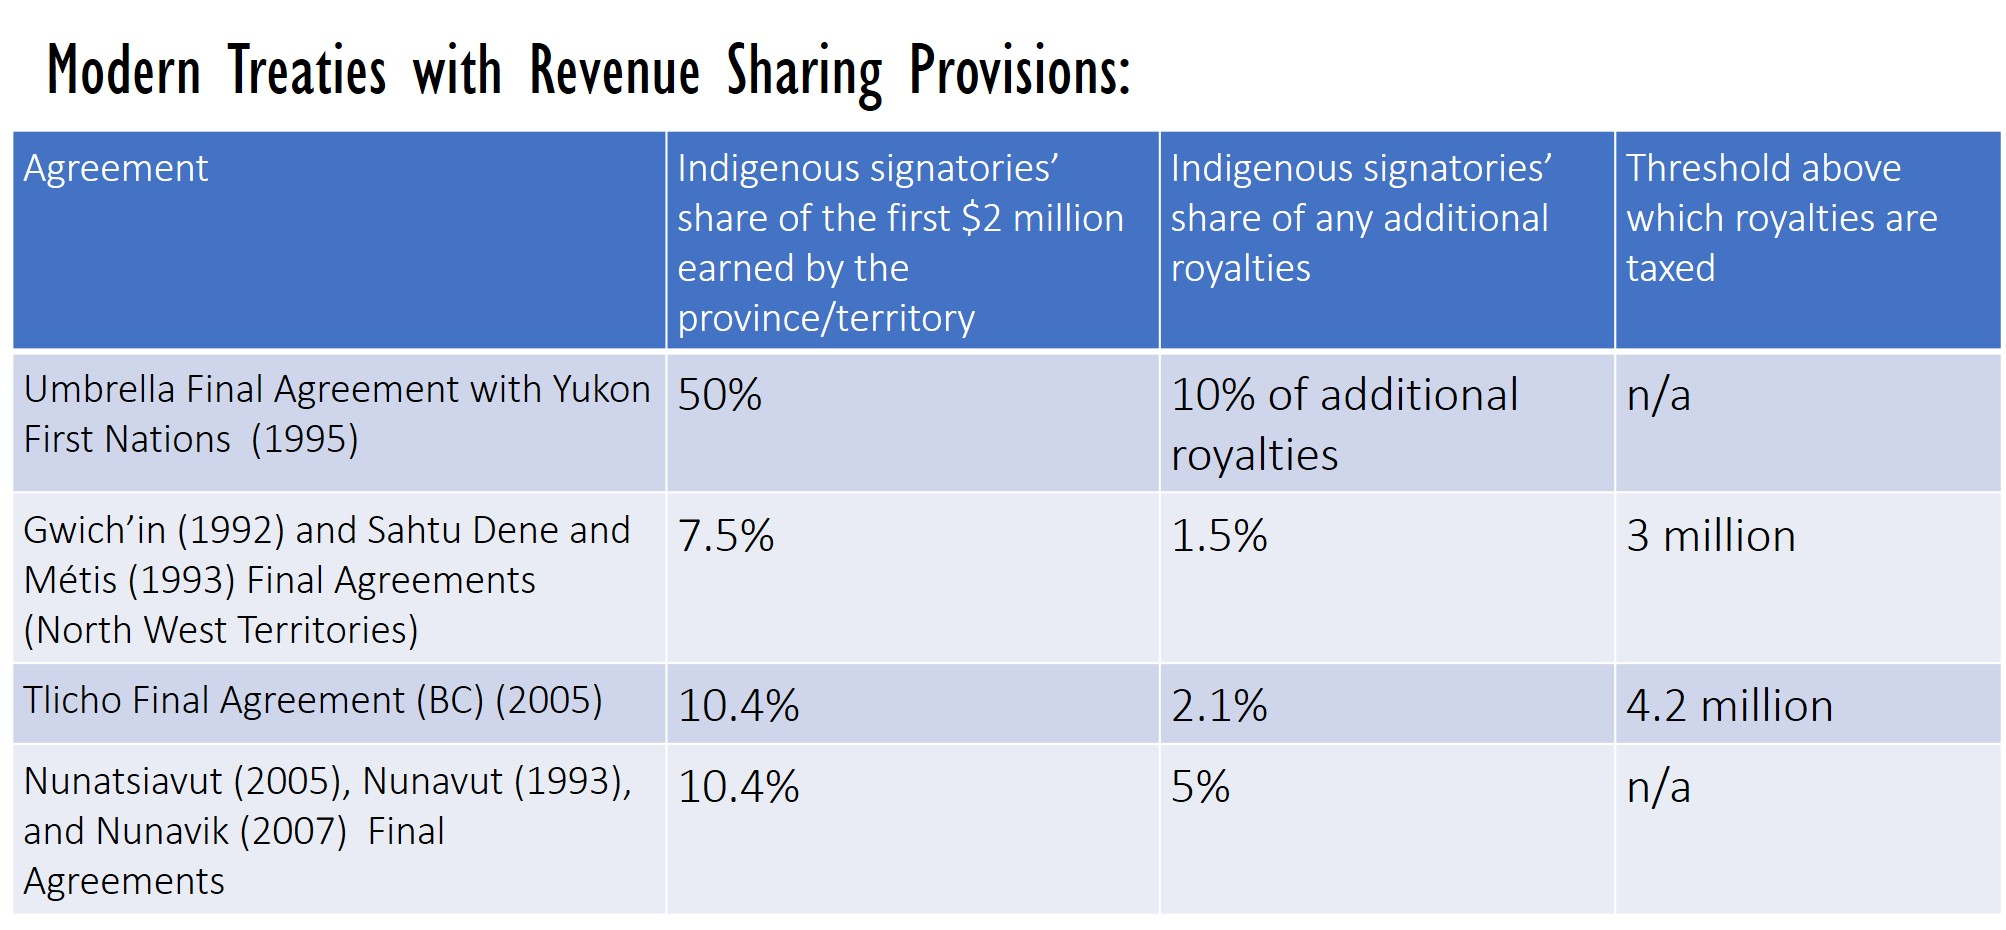 Modern Treaties with Revenue Sharing Provisions Chart. Compiled by: Anya Hageman. Source of information: Coates, (2015). [170]